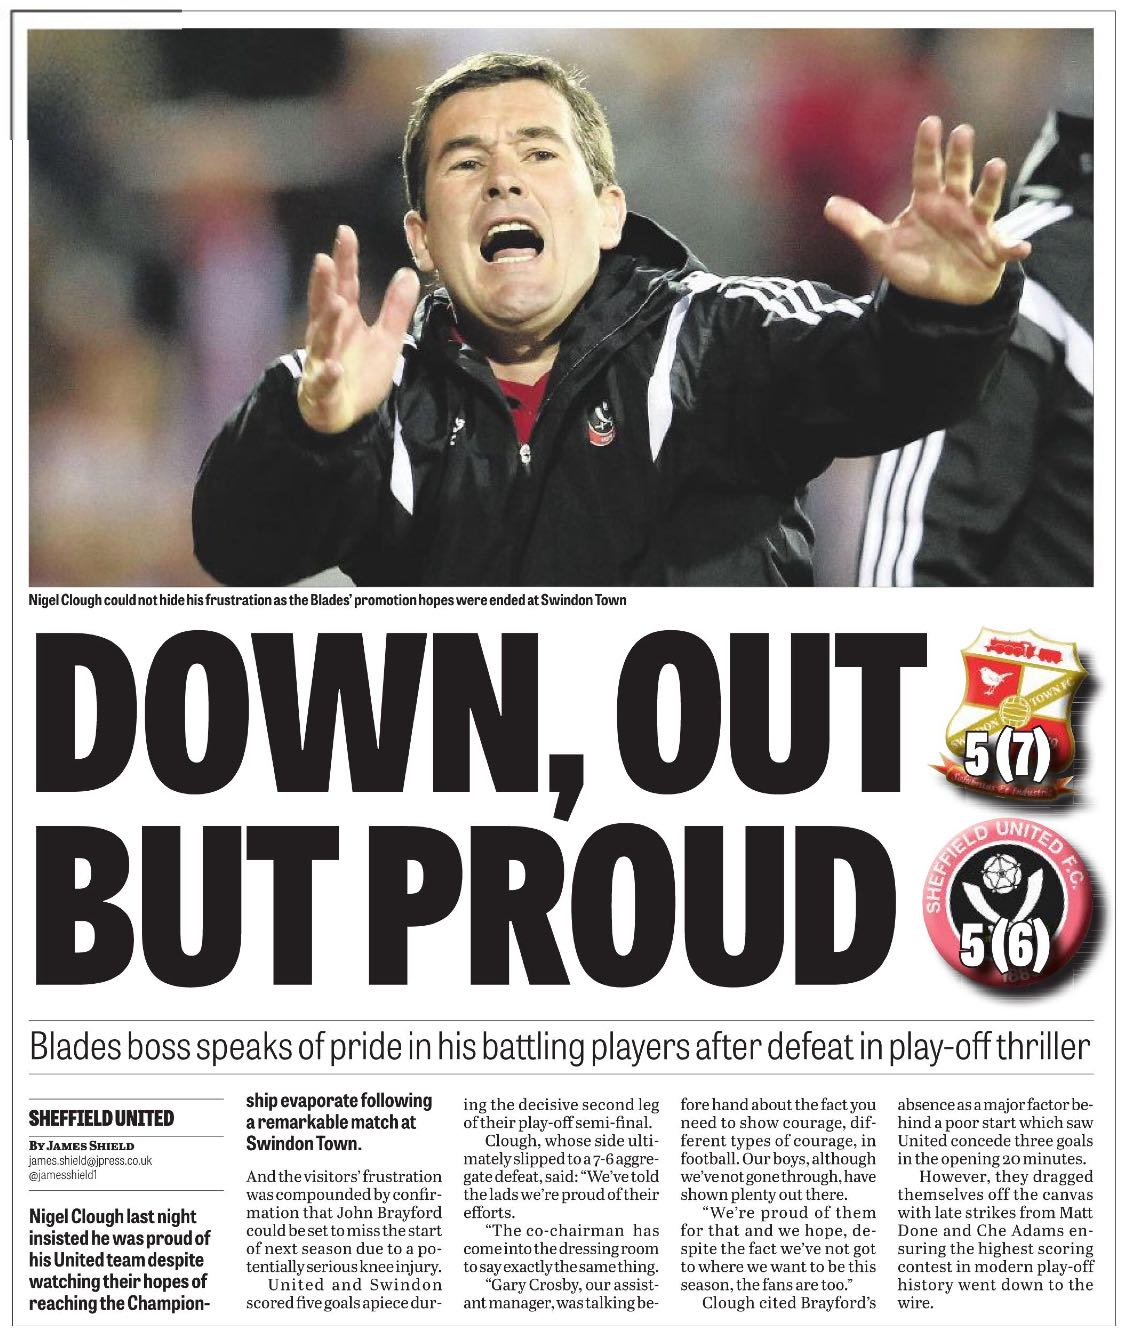 COLD COMFORT:  HOW THE STAR REPORTED UNITED'S PLAY-OFF EXIT